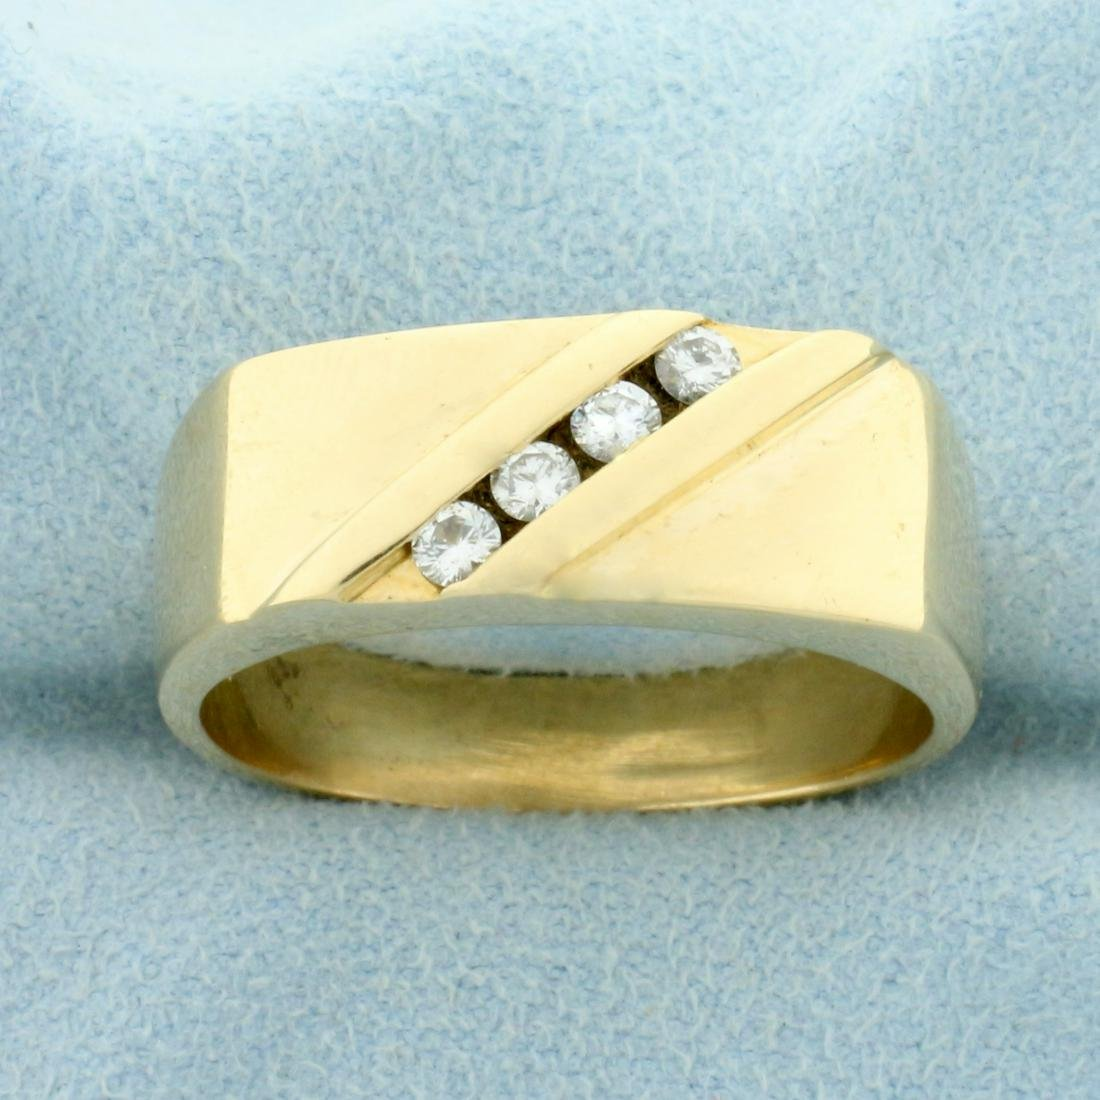 Men's Four Stone Diamond Ring in 14K Yellow Gold